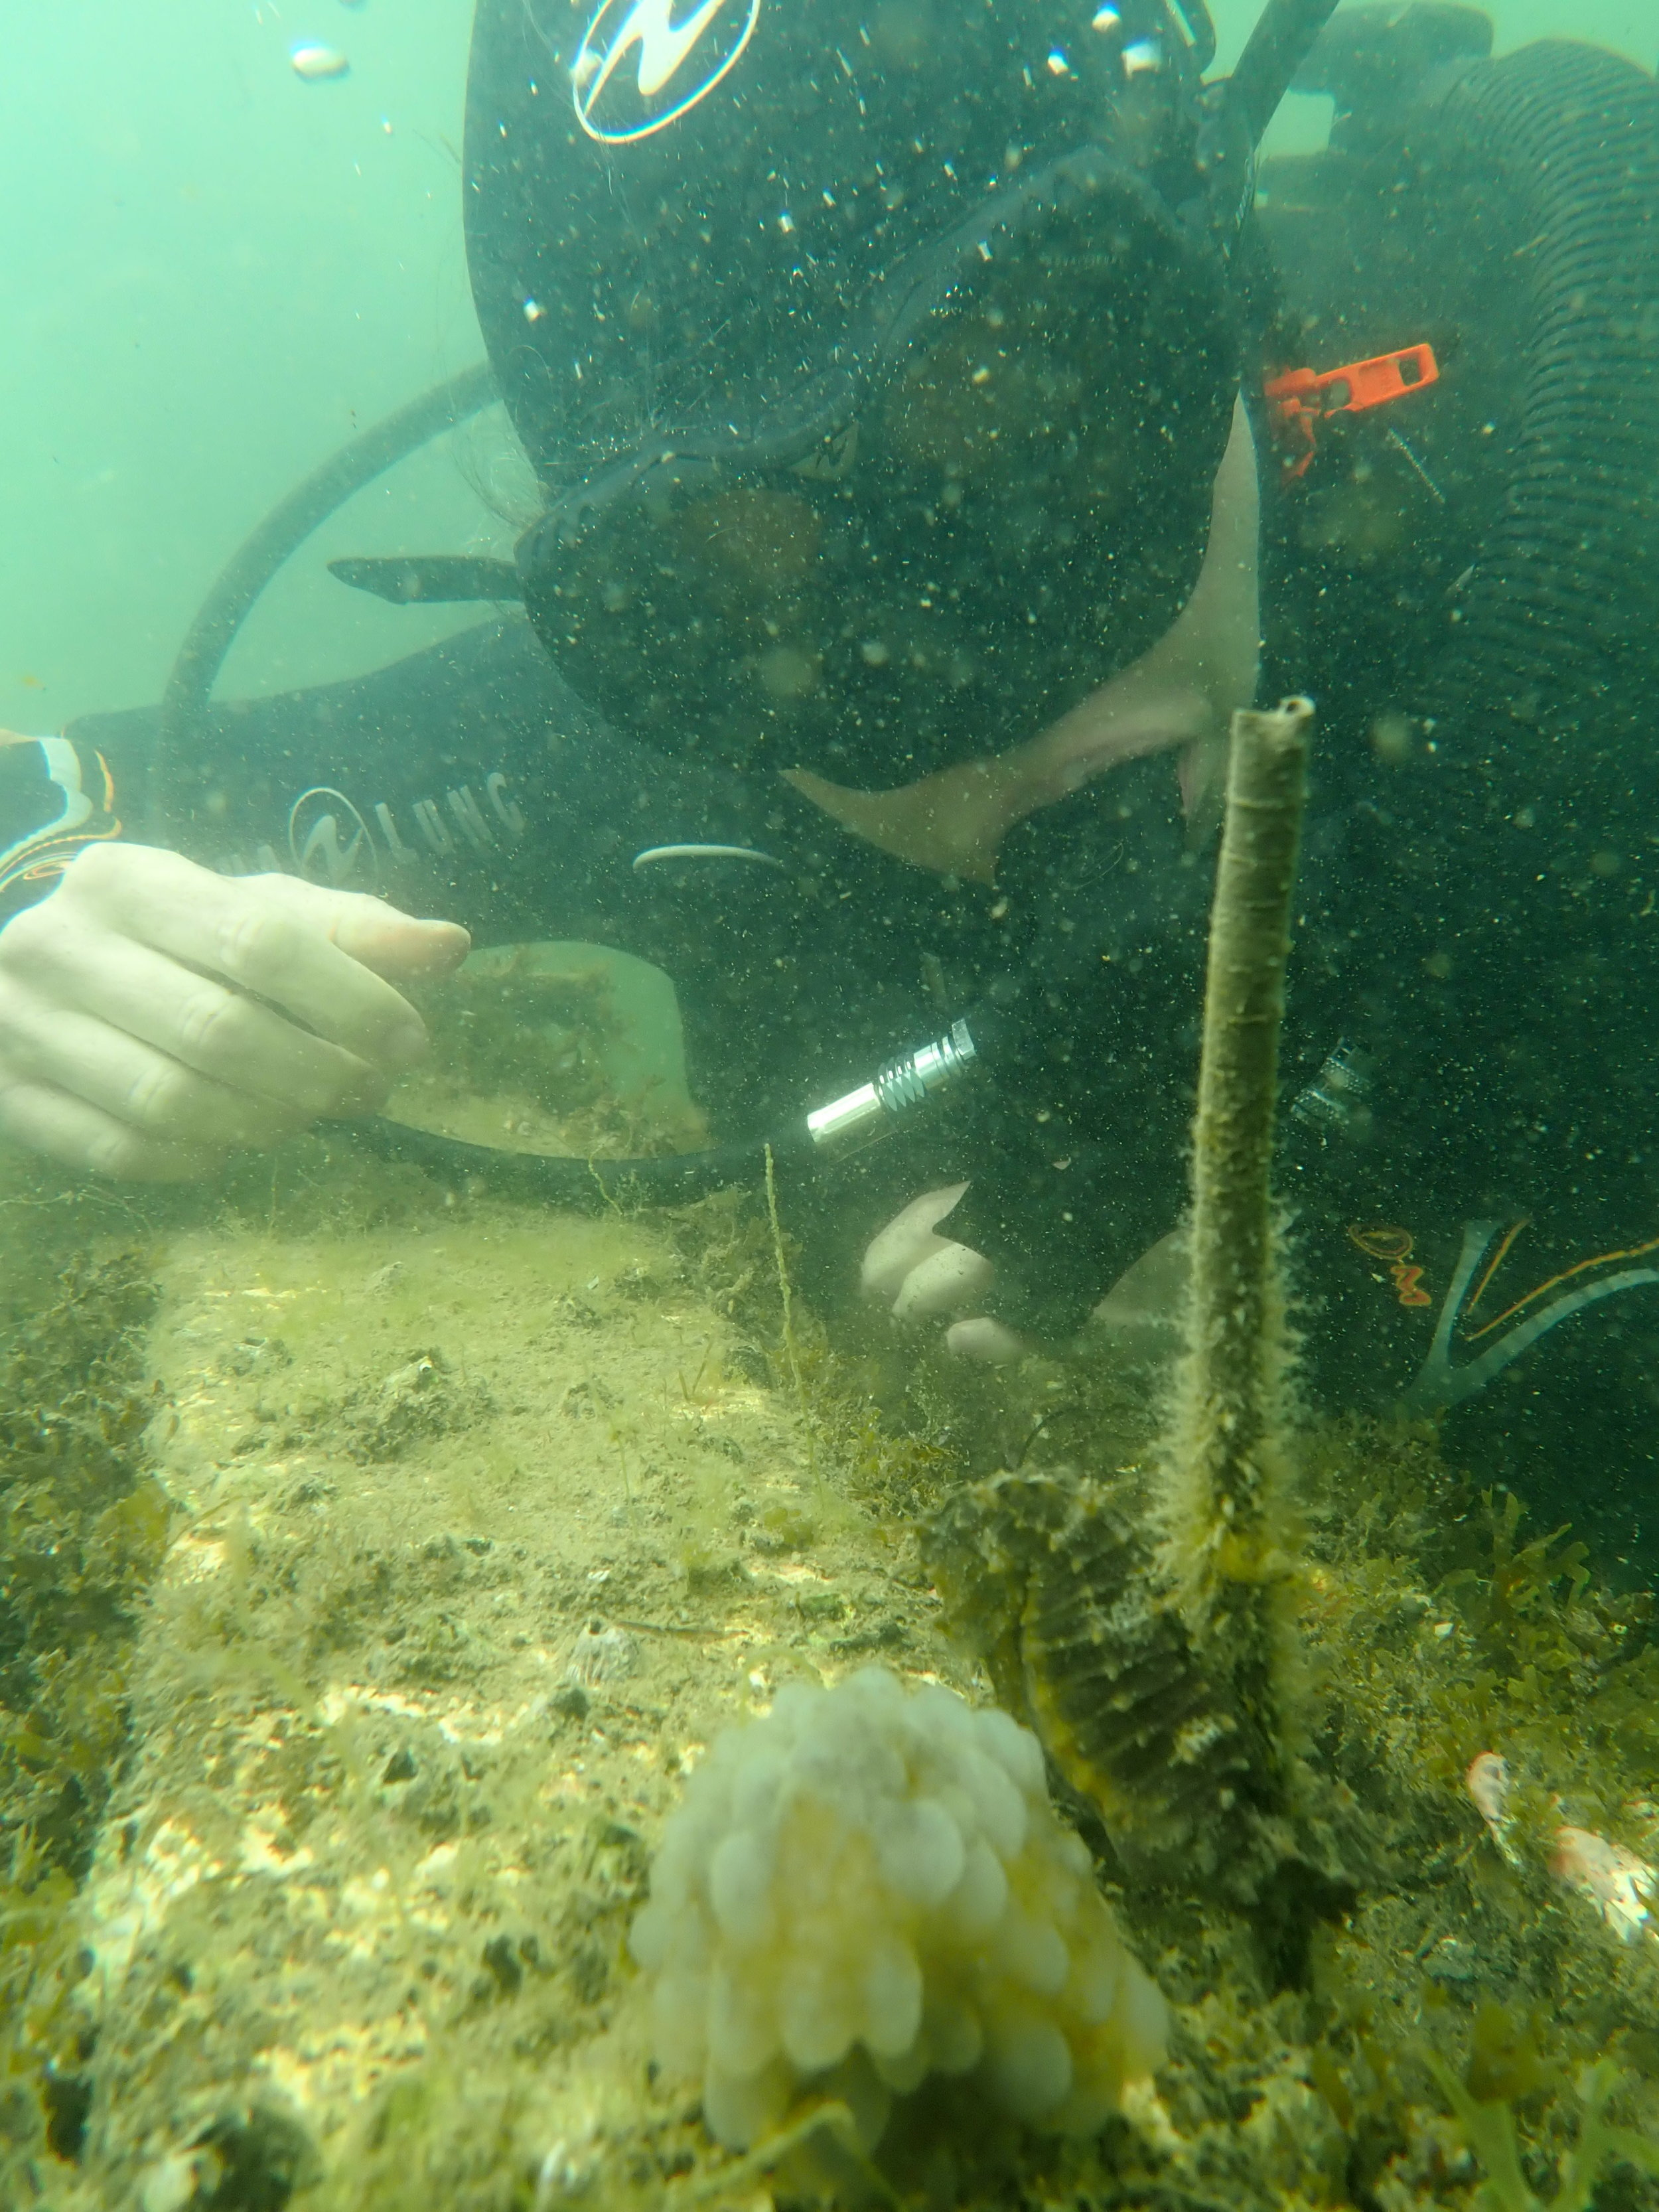 Gina watching a long-snouted seahorse ( H. guttulatus ) in the Etang du Thau, France. Photo by Amanda Vincent/Project Seahorse